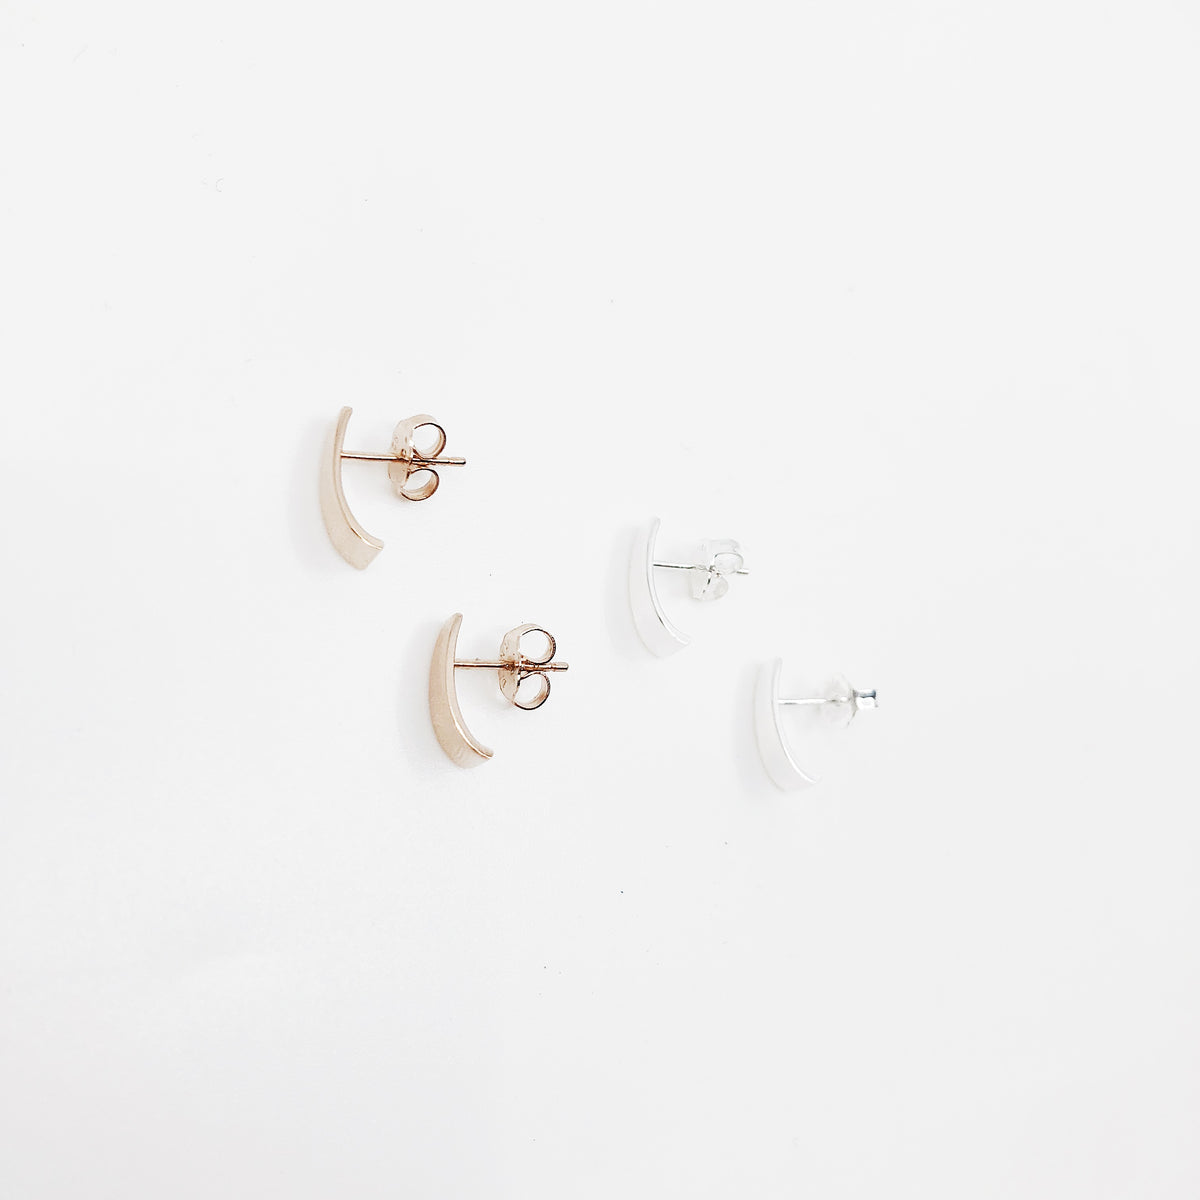 Curved bar earrings - pair